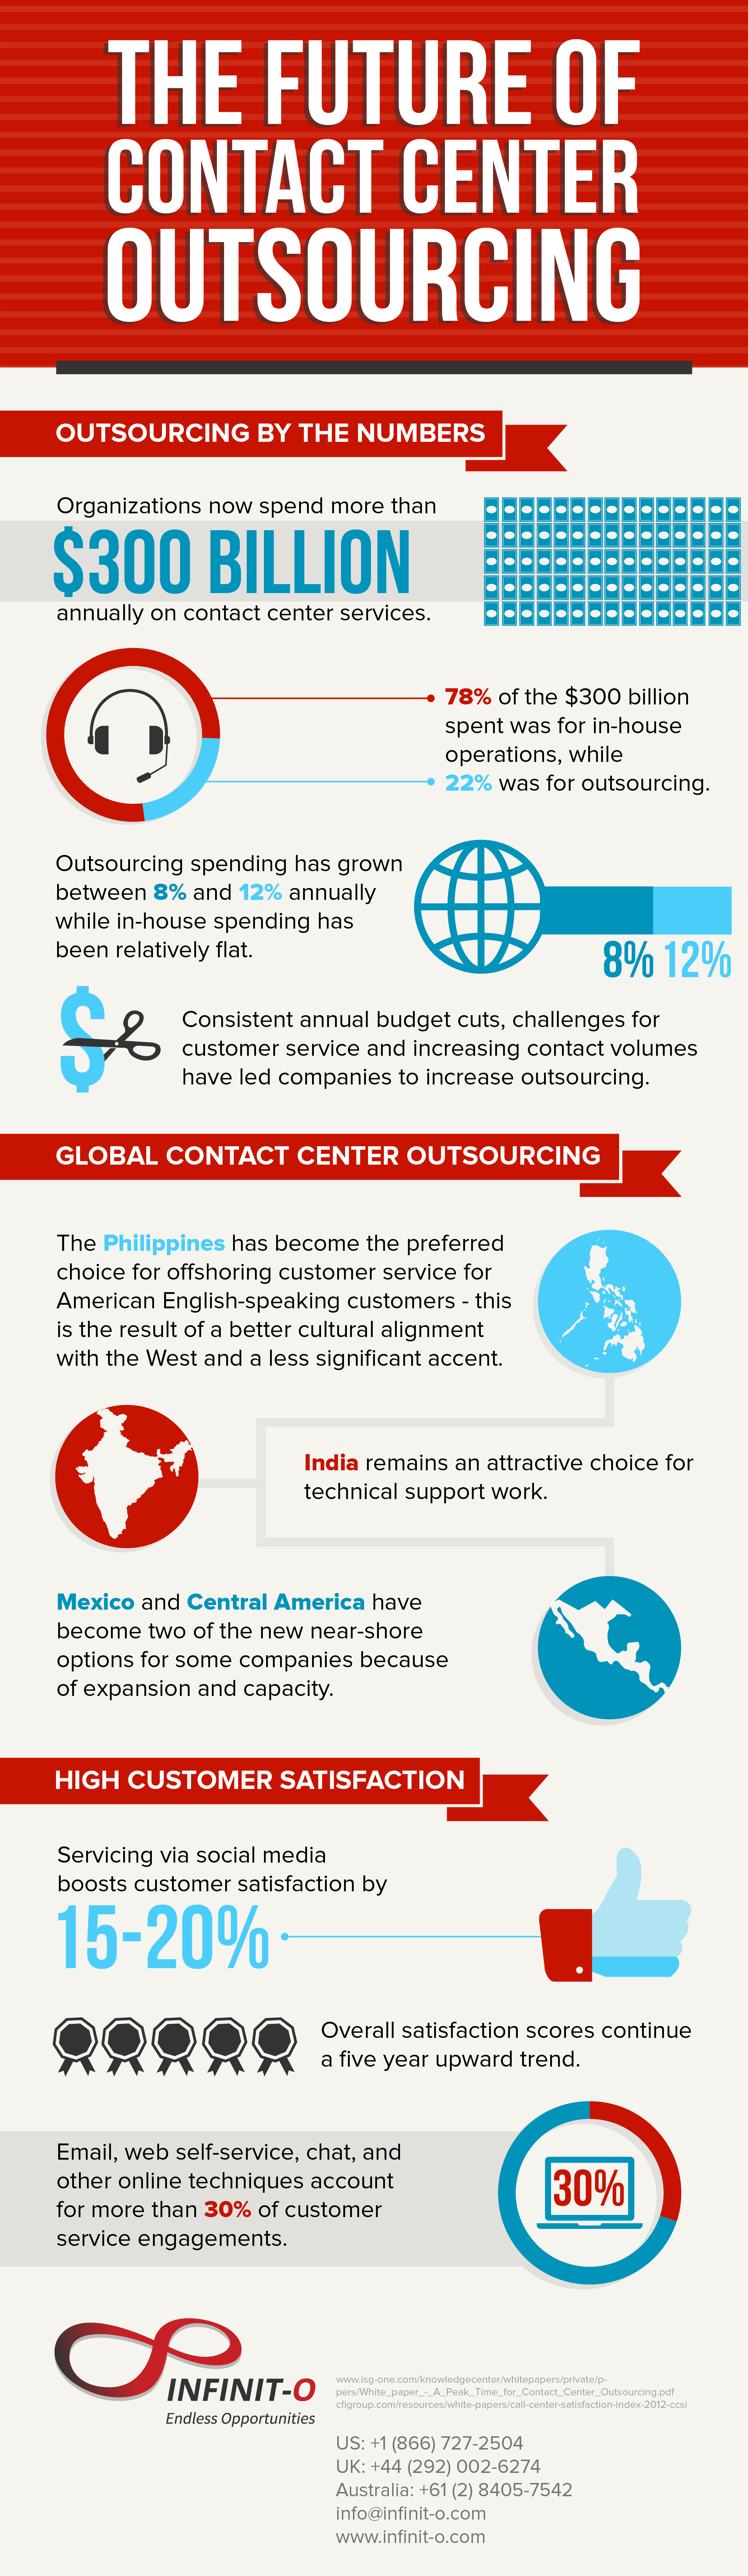 the future of contact center outsourcing infographic